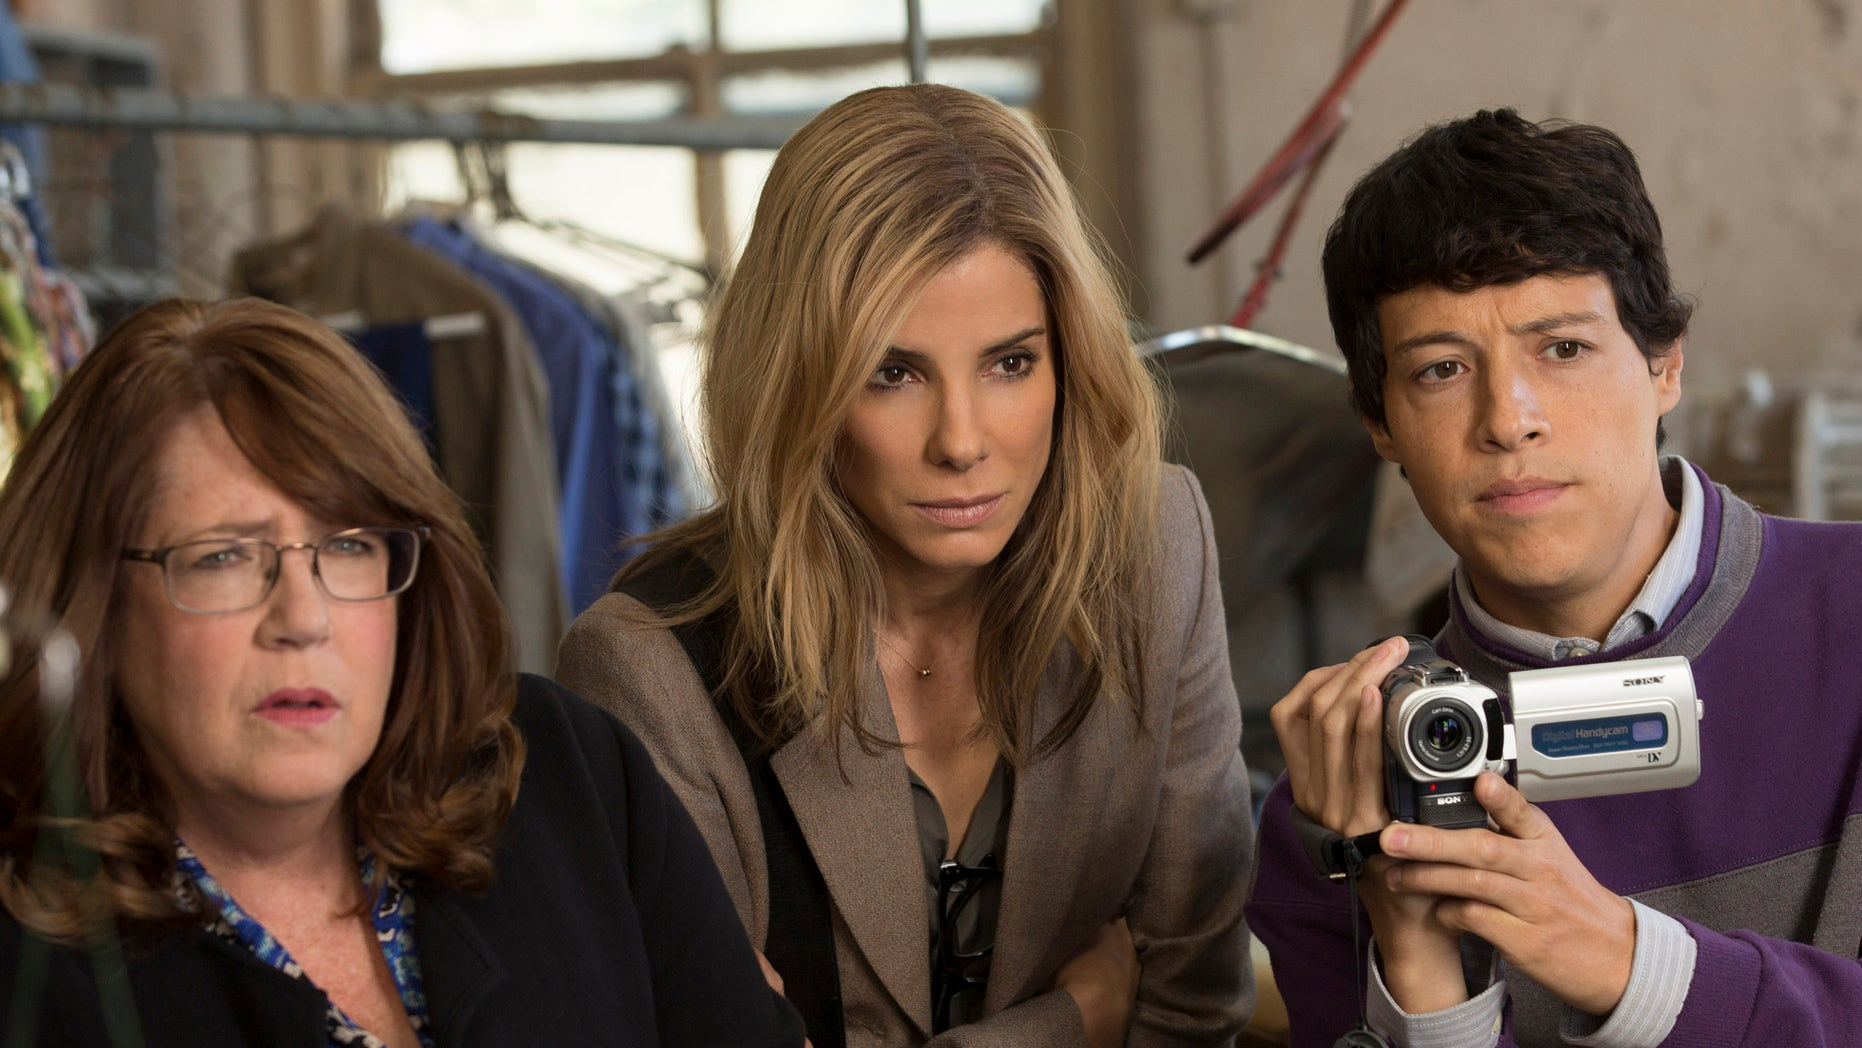 "This photo provided by Warner Bros. Pictures shows, Ann Dowd, from left, as Nell, Sandra Bullock as Jane and Reynaldo Pacheco as Eddie, in Warner Bros. Pictures and Participant Media's satirical comedy ""Our Brand Is Crisis,"" a Warner Bros. Pictures release. The movie opens in U.S. theaters on Oct. 30. (Patti Perret/Warner Bros. Pictures via AP)"